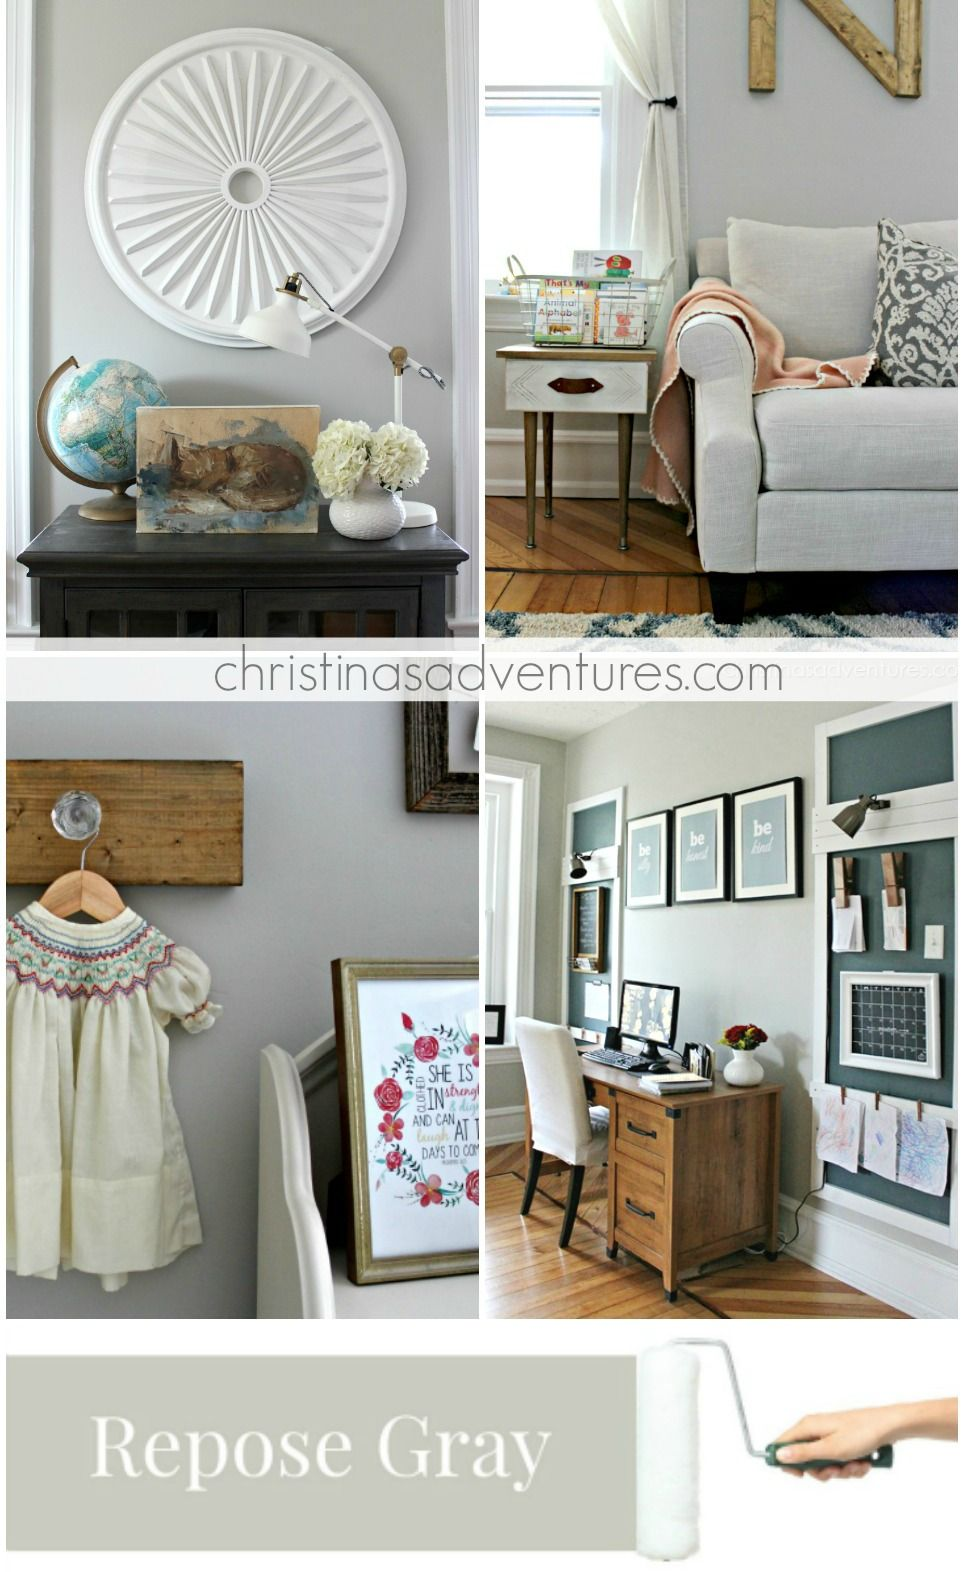 Repose Gray Bedroom: Our House: Modern Farmhouse Paint Colors